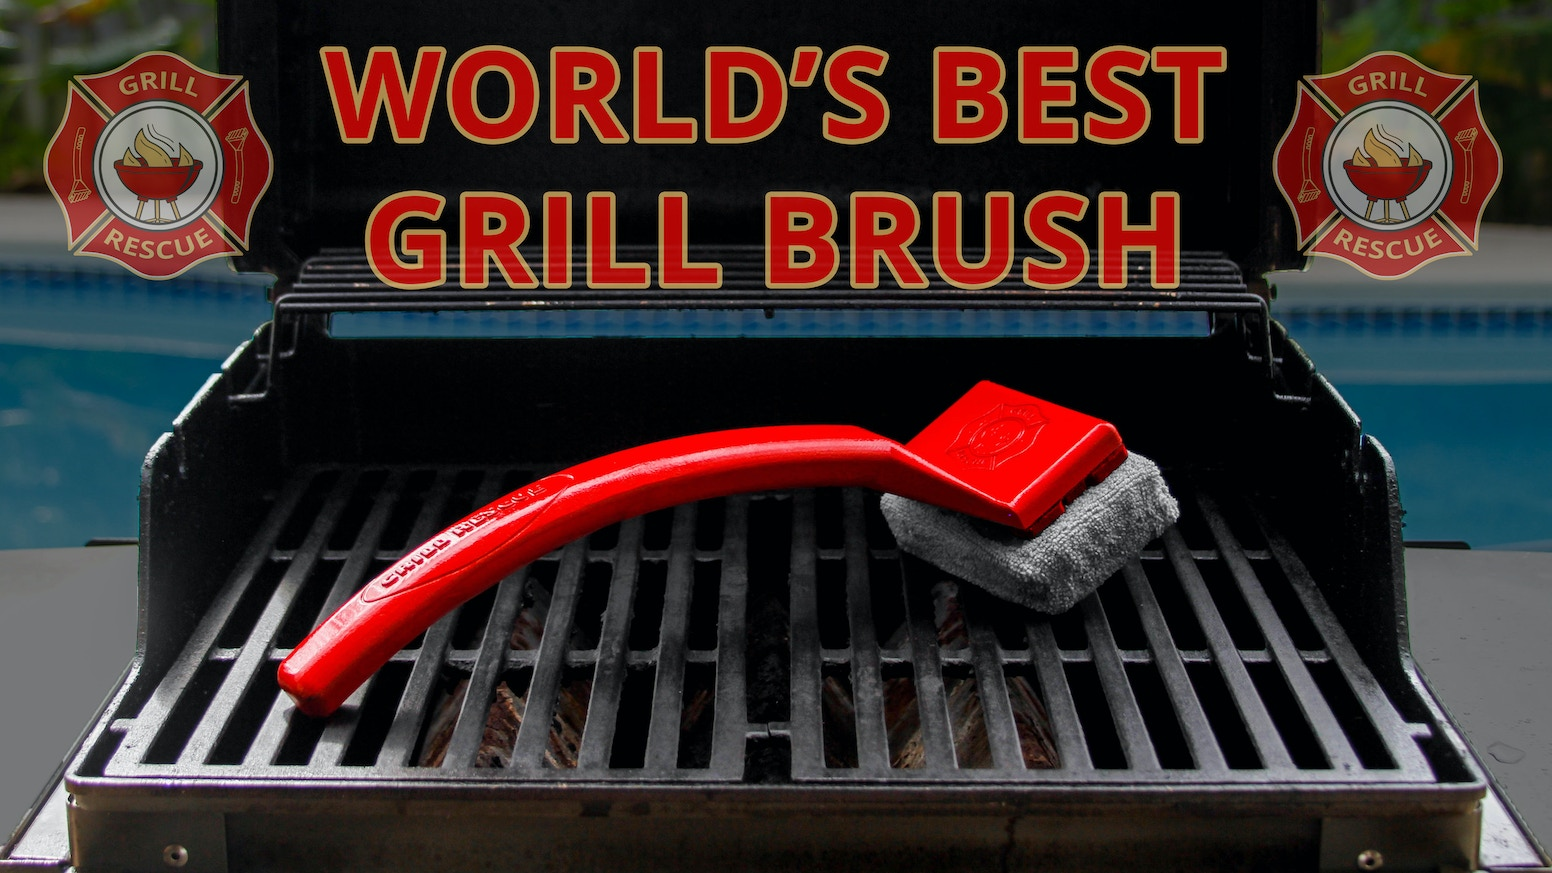 Simply the best tool to clean your grill.